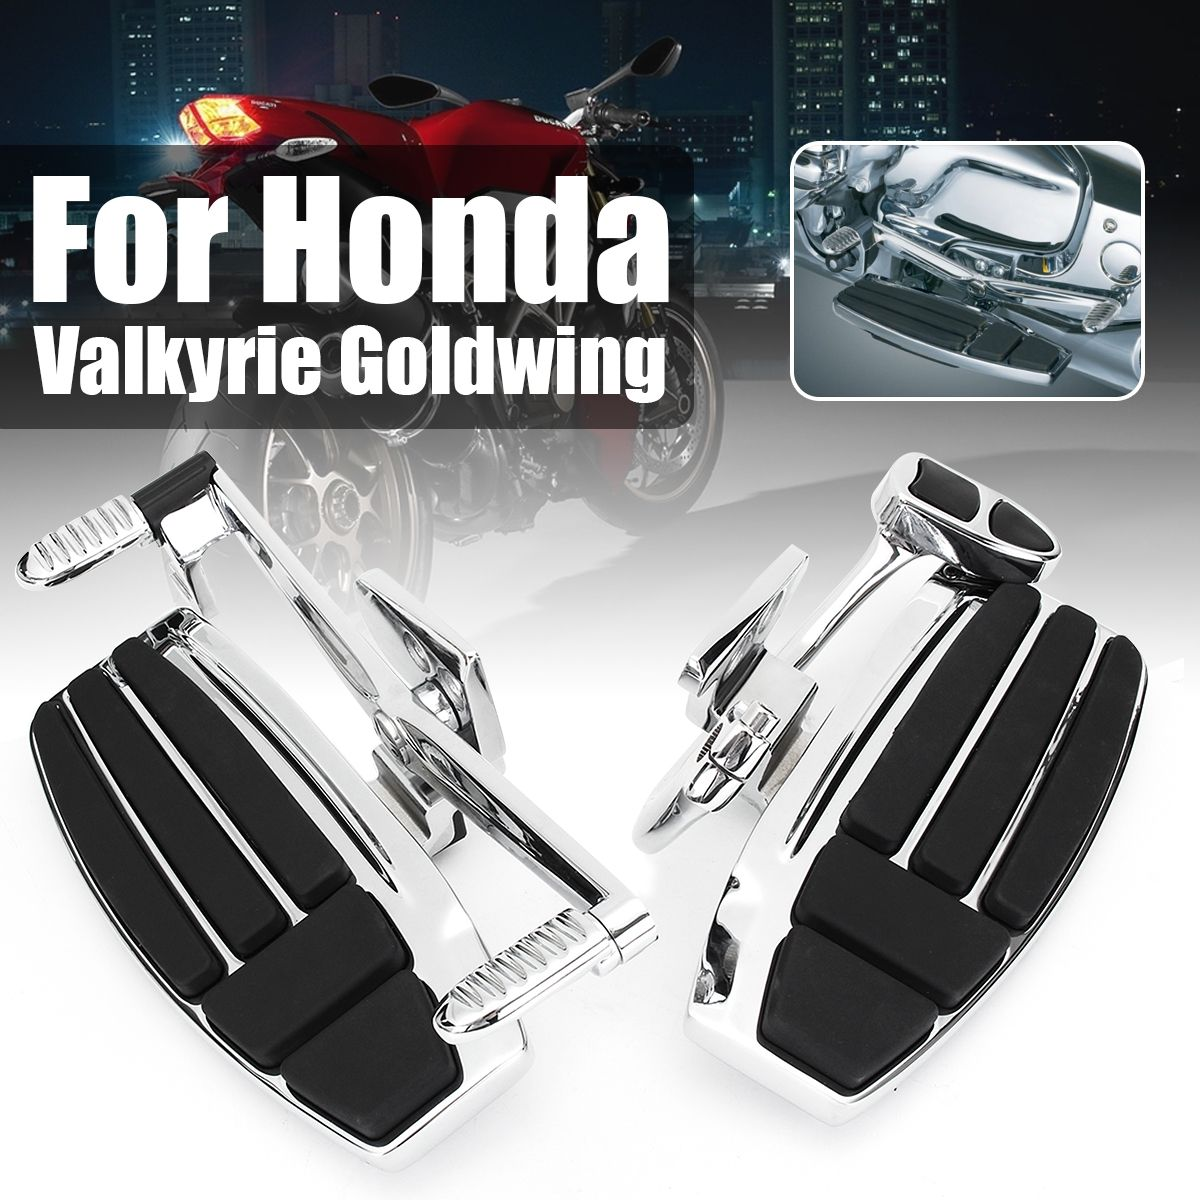 Aluminum Alloy Driver Front Motorbike Foot Board Peg for Honda Valkyrie 1800 2014-2015 Goldwing GL1800 2001-2016 F6B 2013-2016